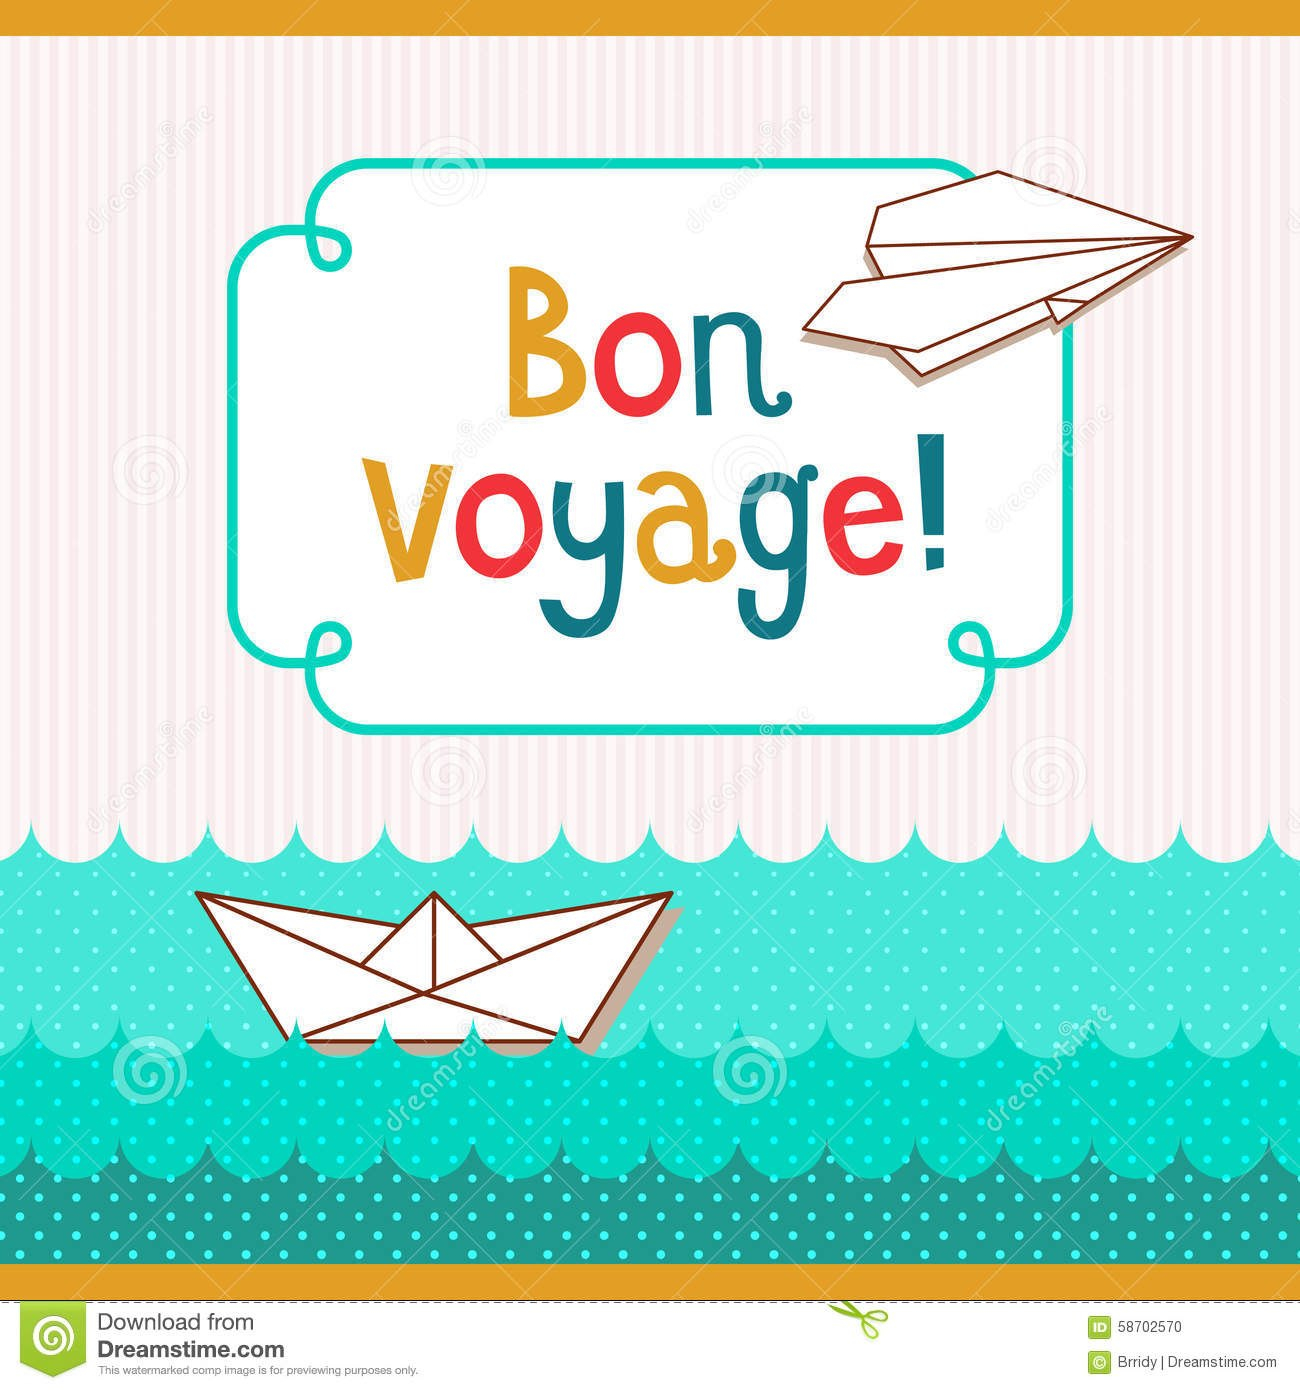 Bon Voyage Card Stock Vector Illustration Of Paper Airplane Throughout Bon Voyage Card Template